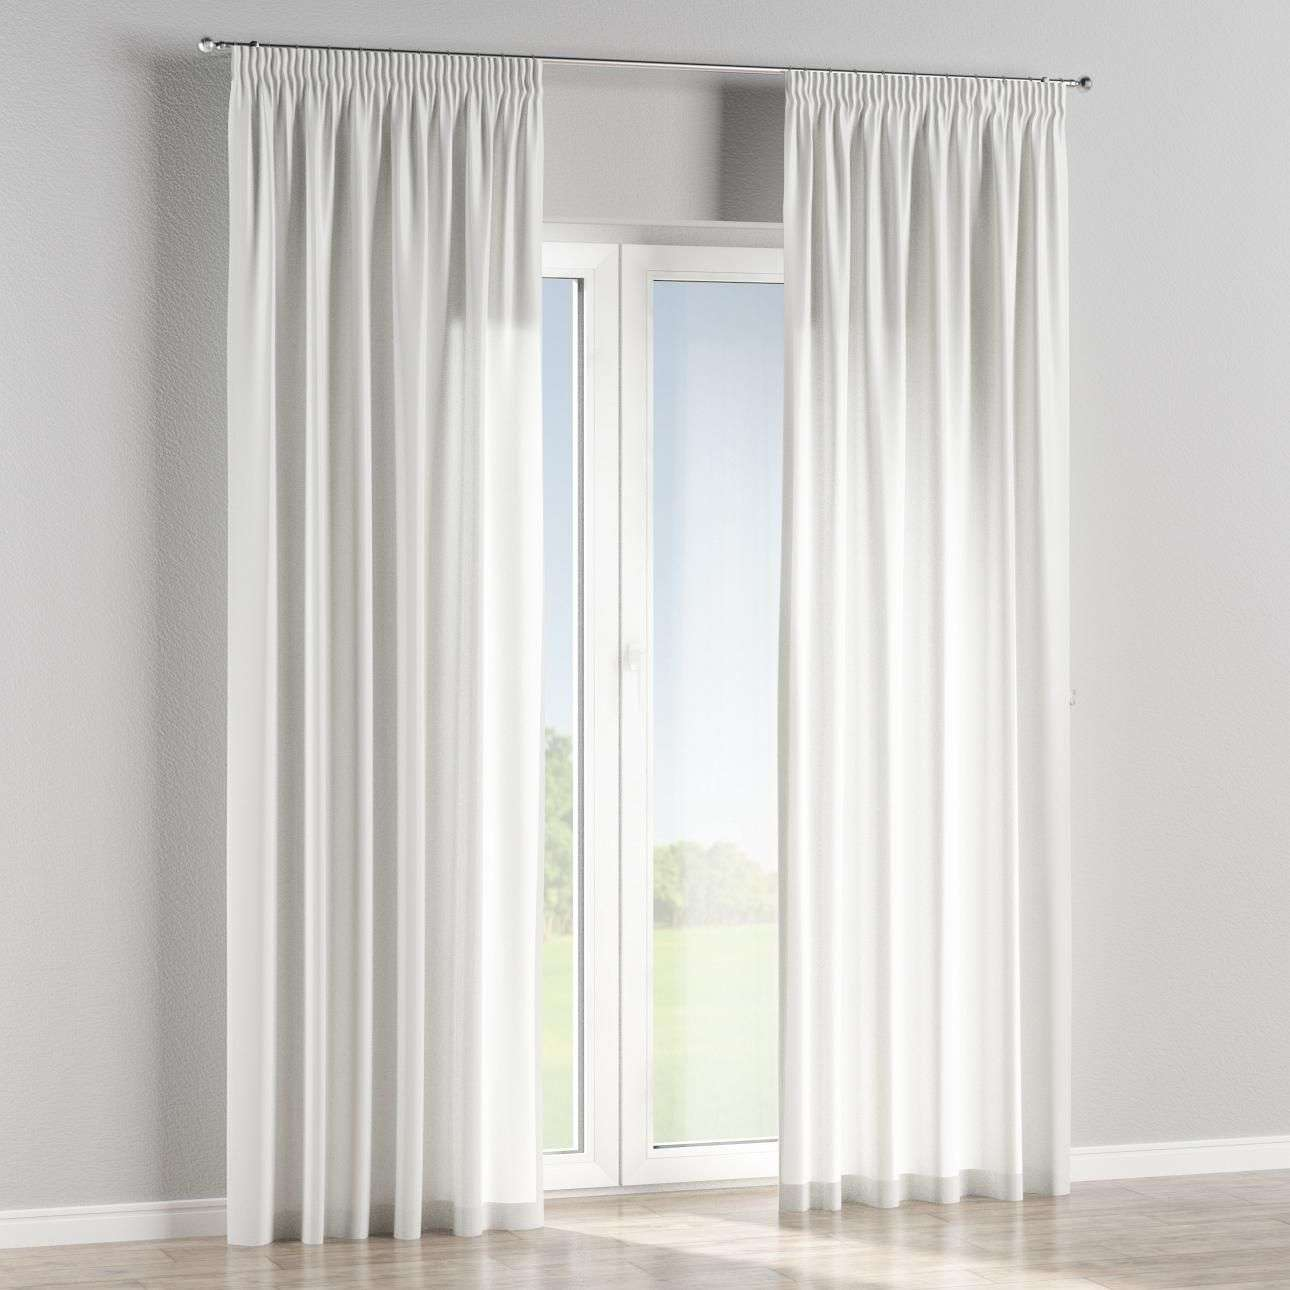 Pencil pleat lined curtains in collection Marina, fabric: 140-14